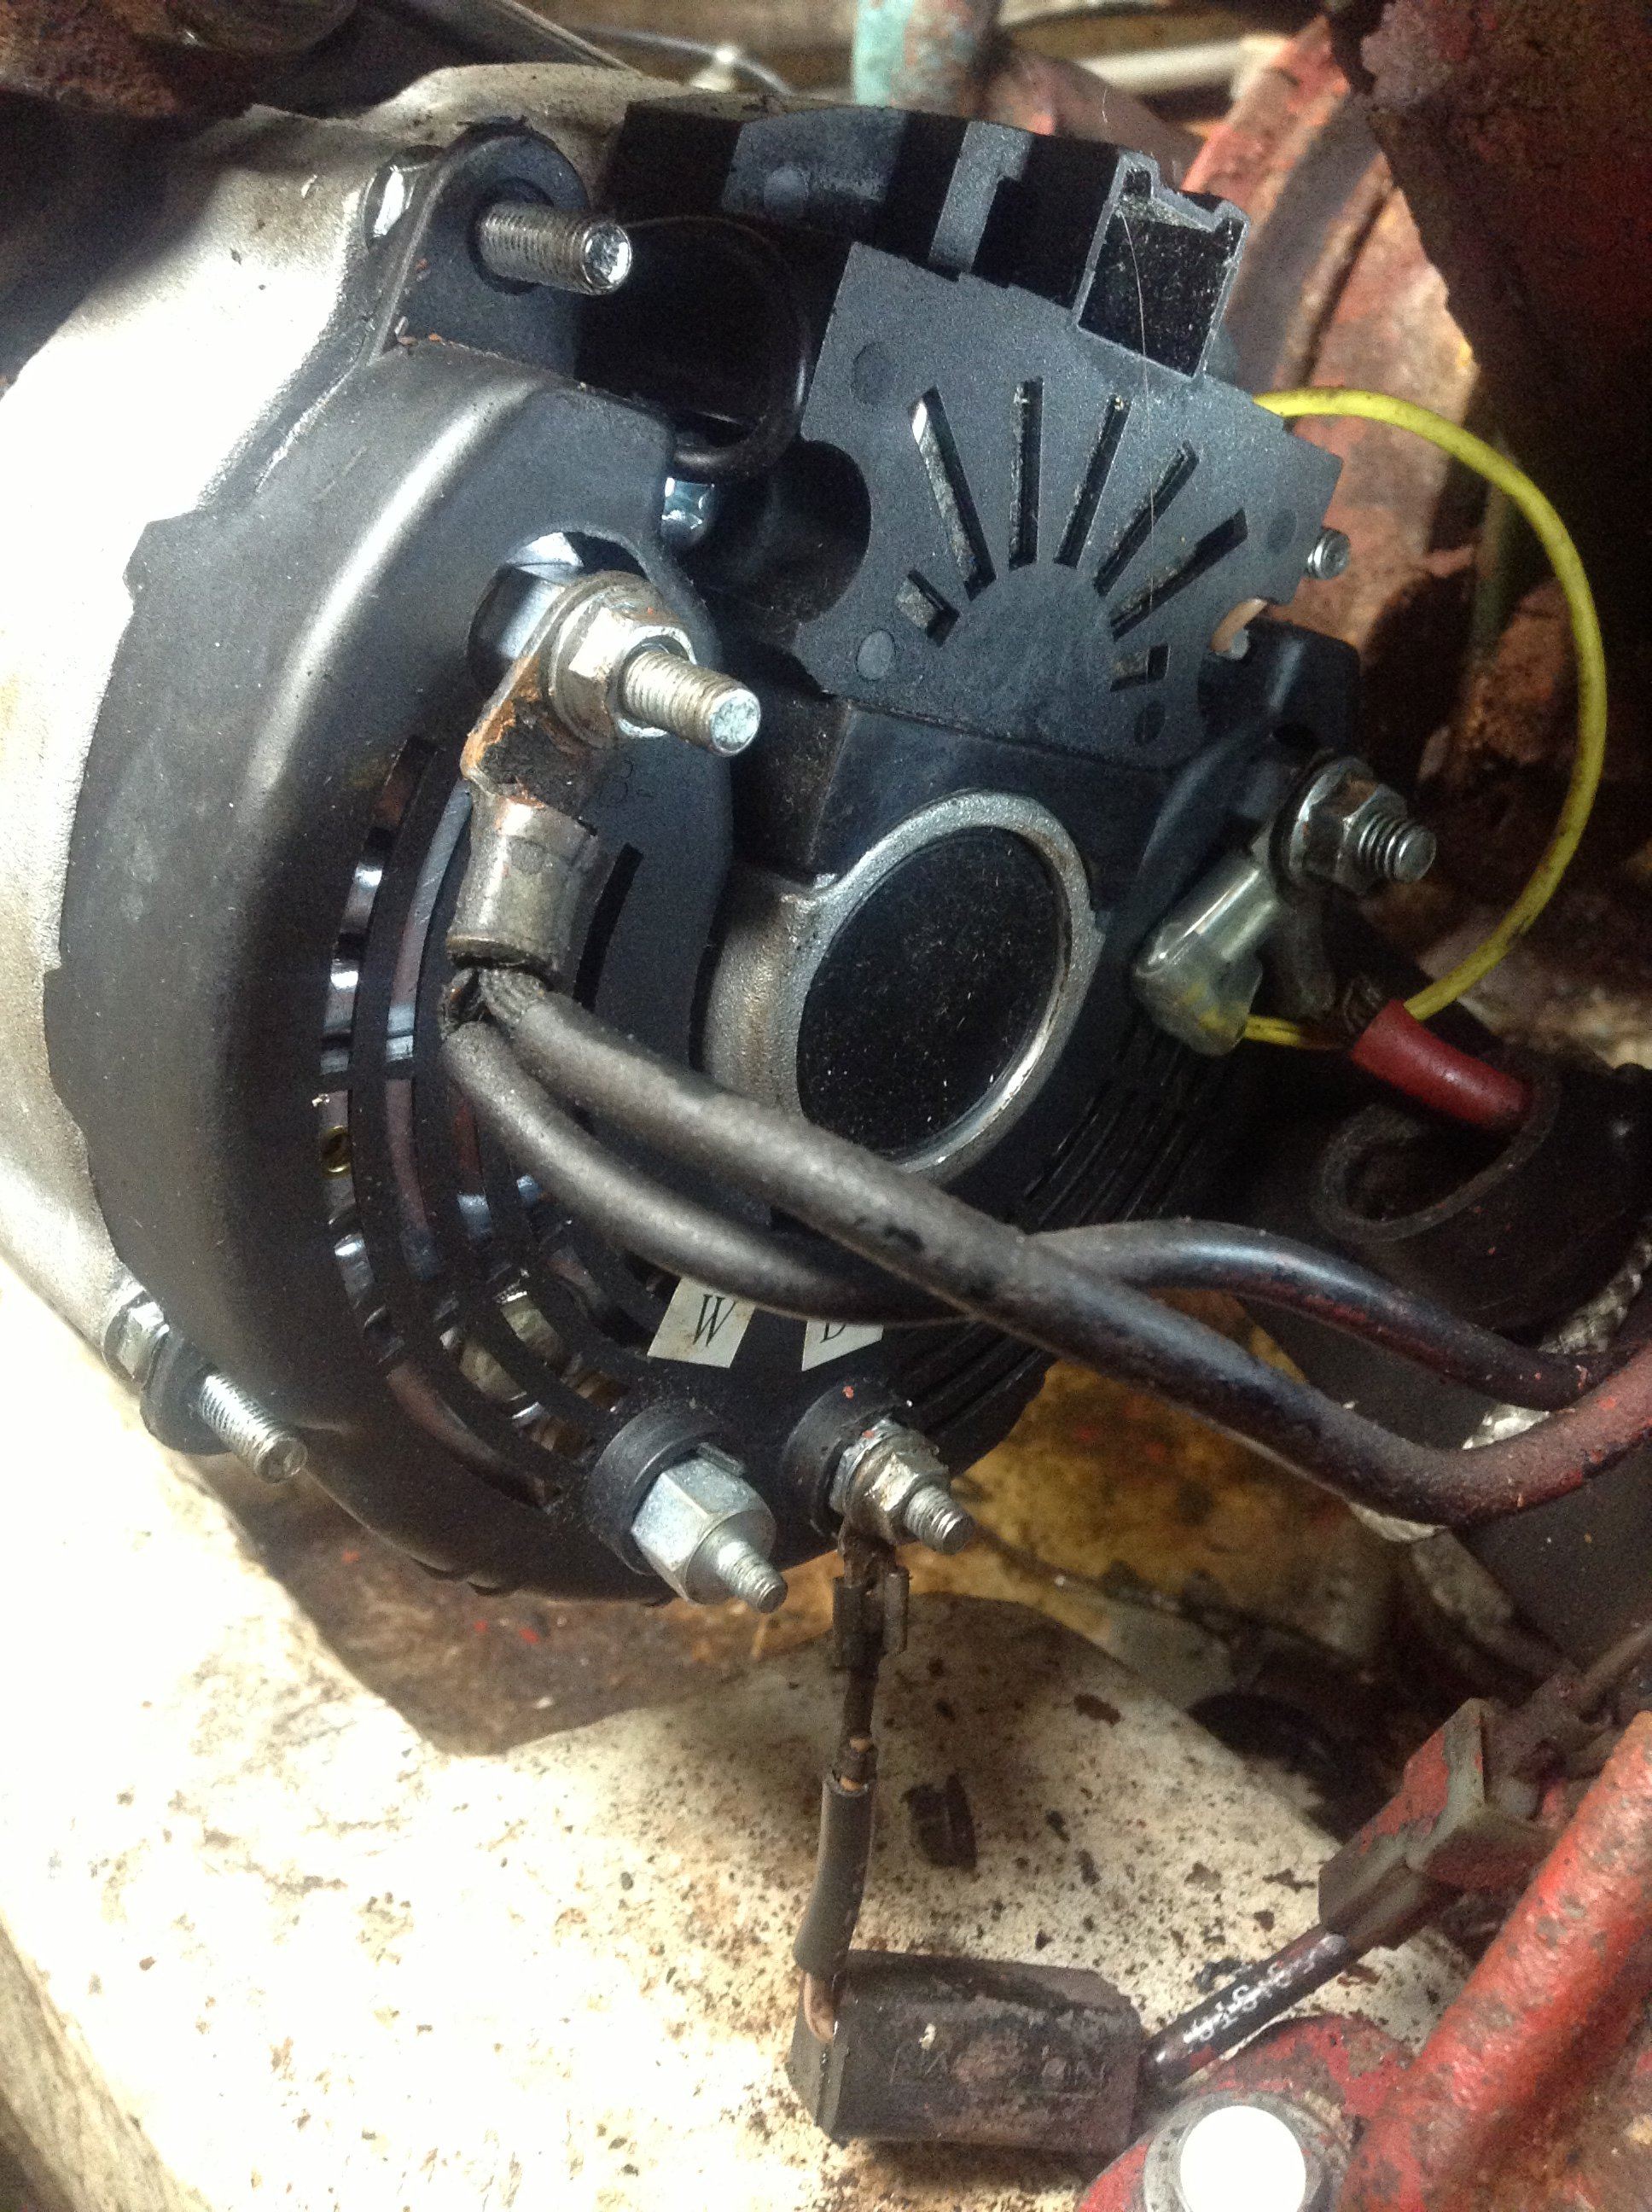 I Installed The Alternator On The Boat Volvo Penta Aq260 5.7. However I  Noticed That The Voltage Gauge Reads 10 To 11